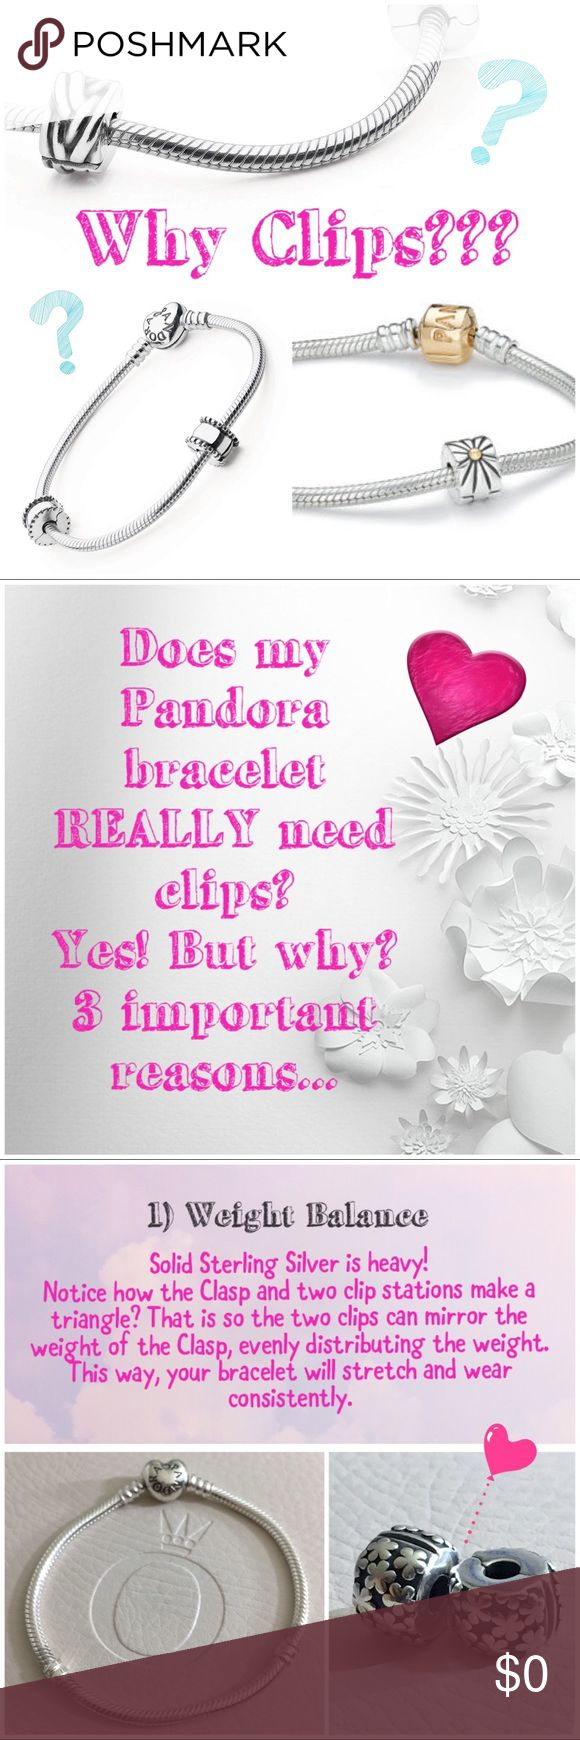 What's up with Pandora clips? •Not for sale• Ever wondered about clips for your Pandora bracelet? 🤔Here are a few answers. 🤗 And for those who just don't like them, there is now a Smooth version of the snake chain bracelet!  🎀 Happy Poshing! 🎀 Pandora Jewelry Bracelets #pandorajewelry